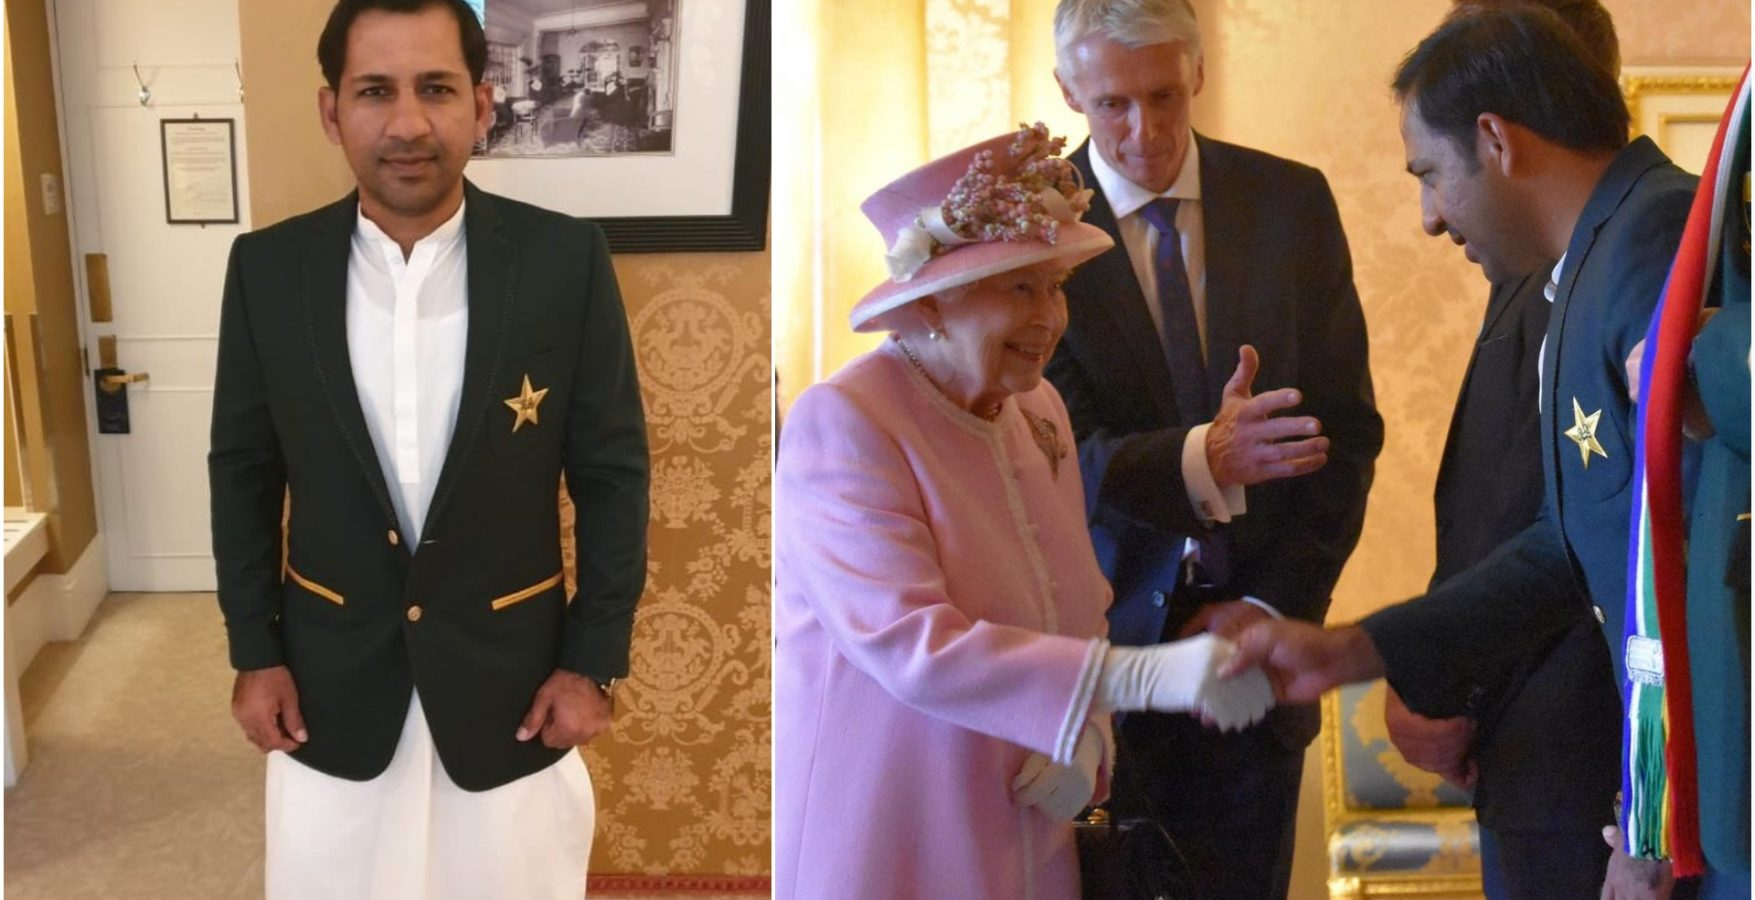 Indian Fans Defends Pakistan Captain Who Was Trolled for Wearing Traditional Outfit During Royal Meeting